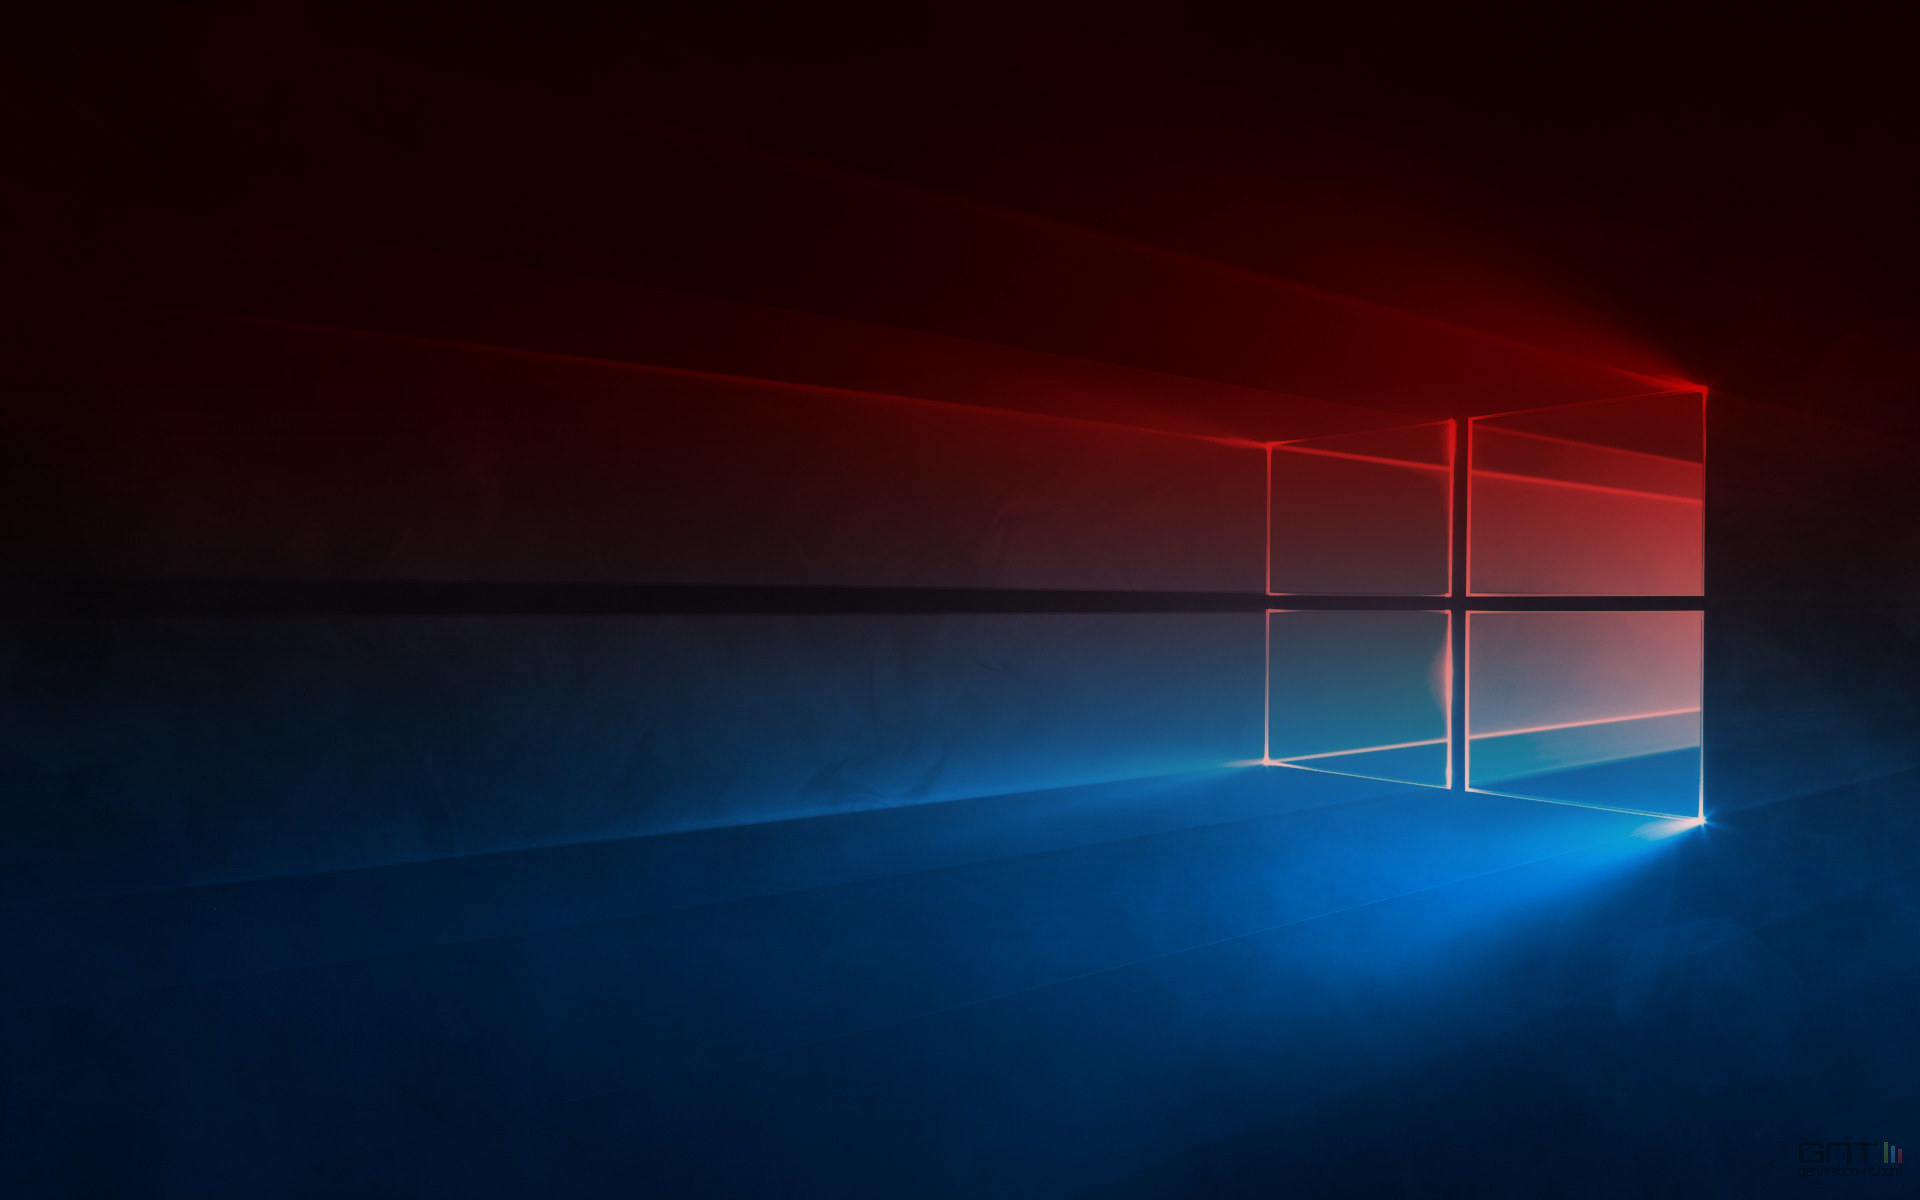 Windows 10 redstone wallpapers wallpapersafari for New to windows